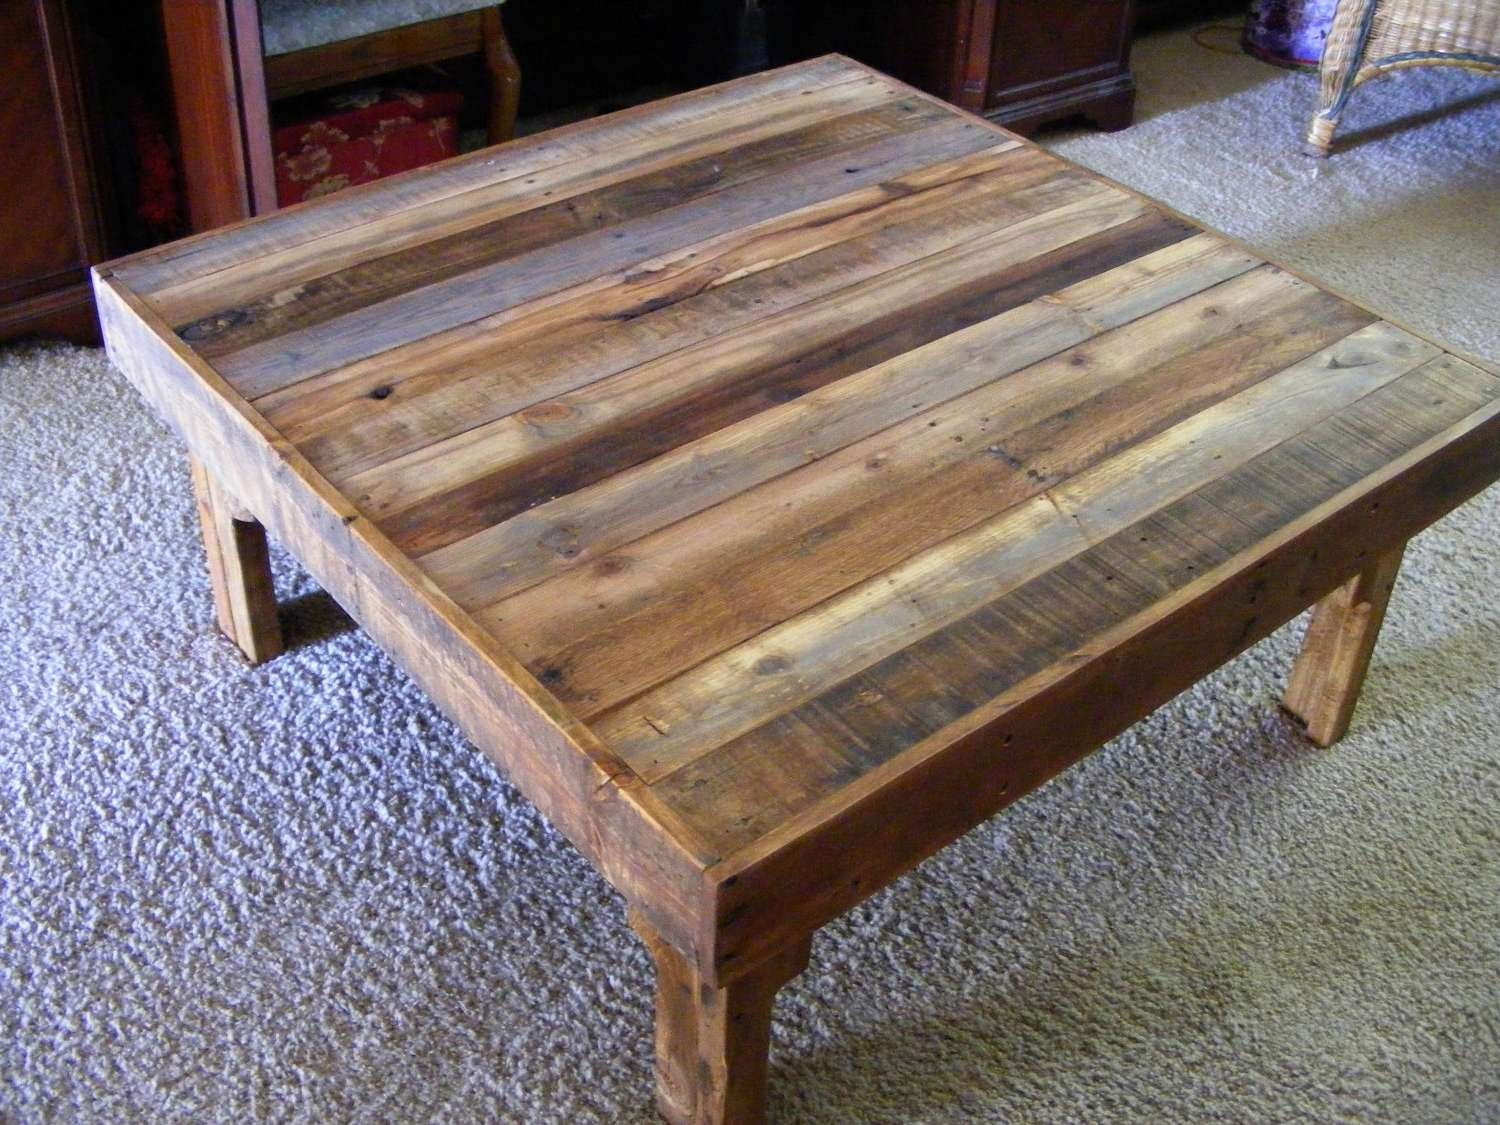 Preferred Rustic Coffee Tables Throughout Coffee Tables : Astonishing Pretty Rustic Coffee Tables Wood Table (View 3 of 20)